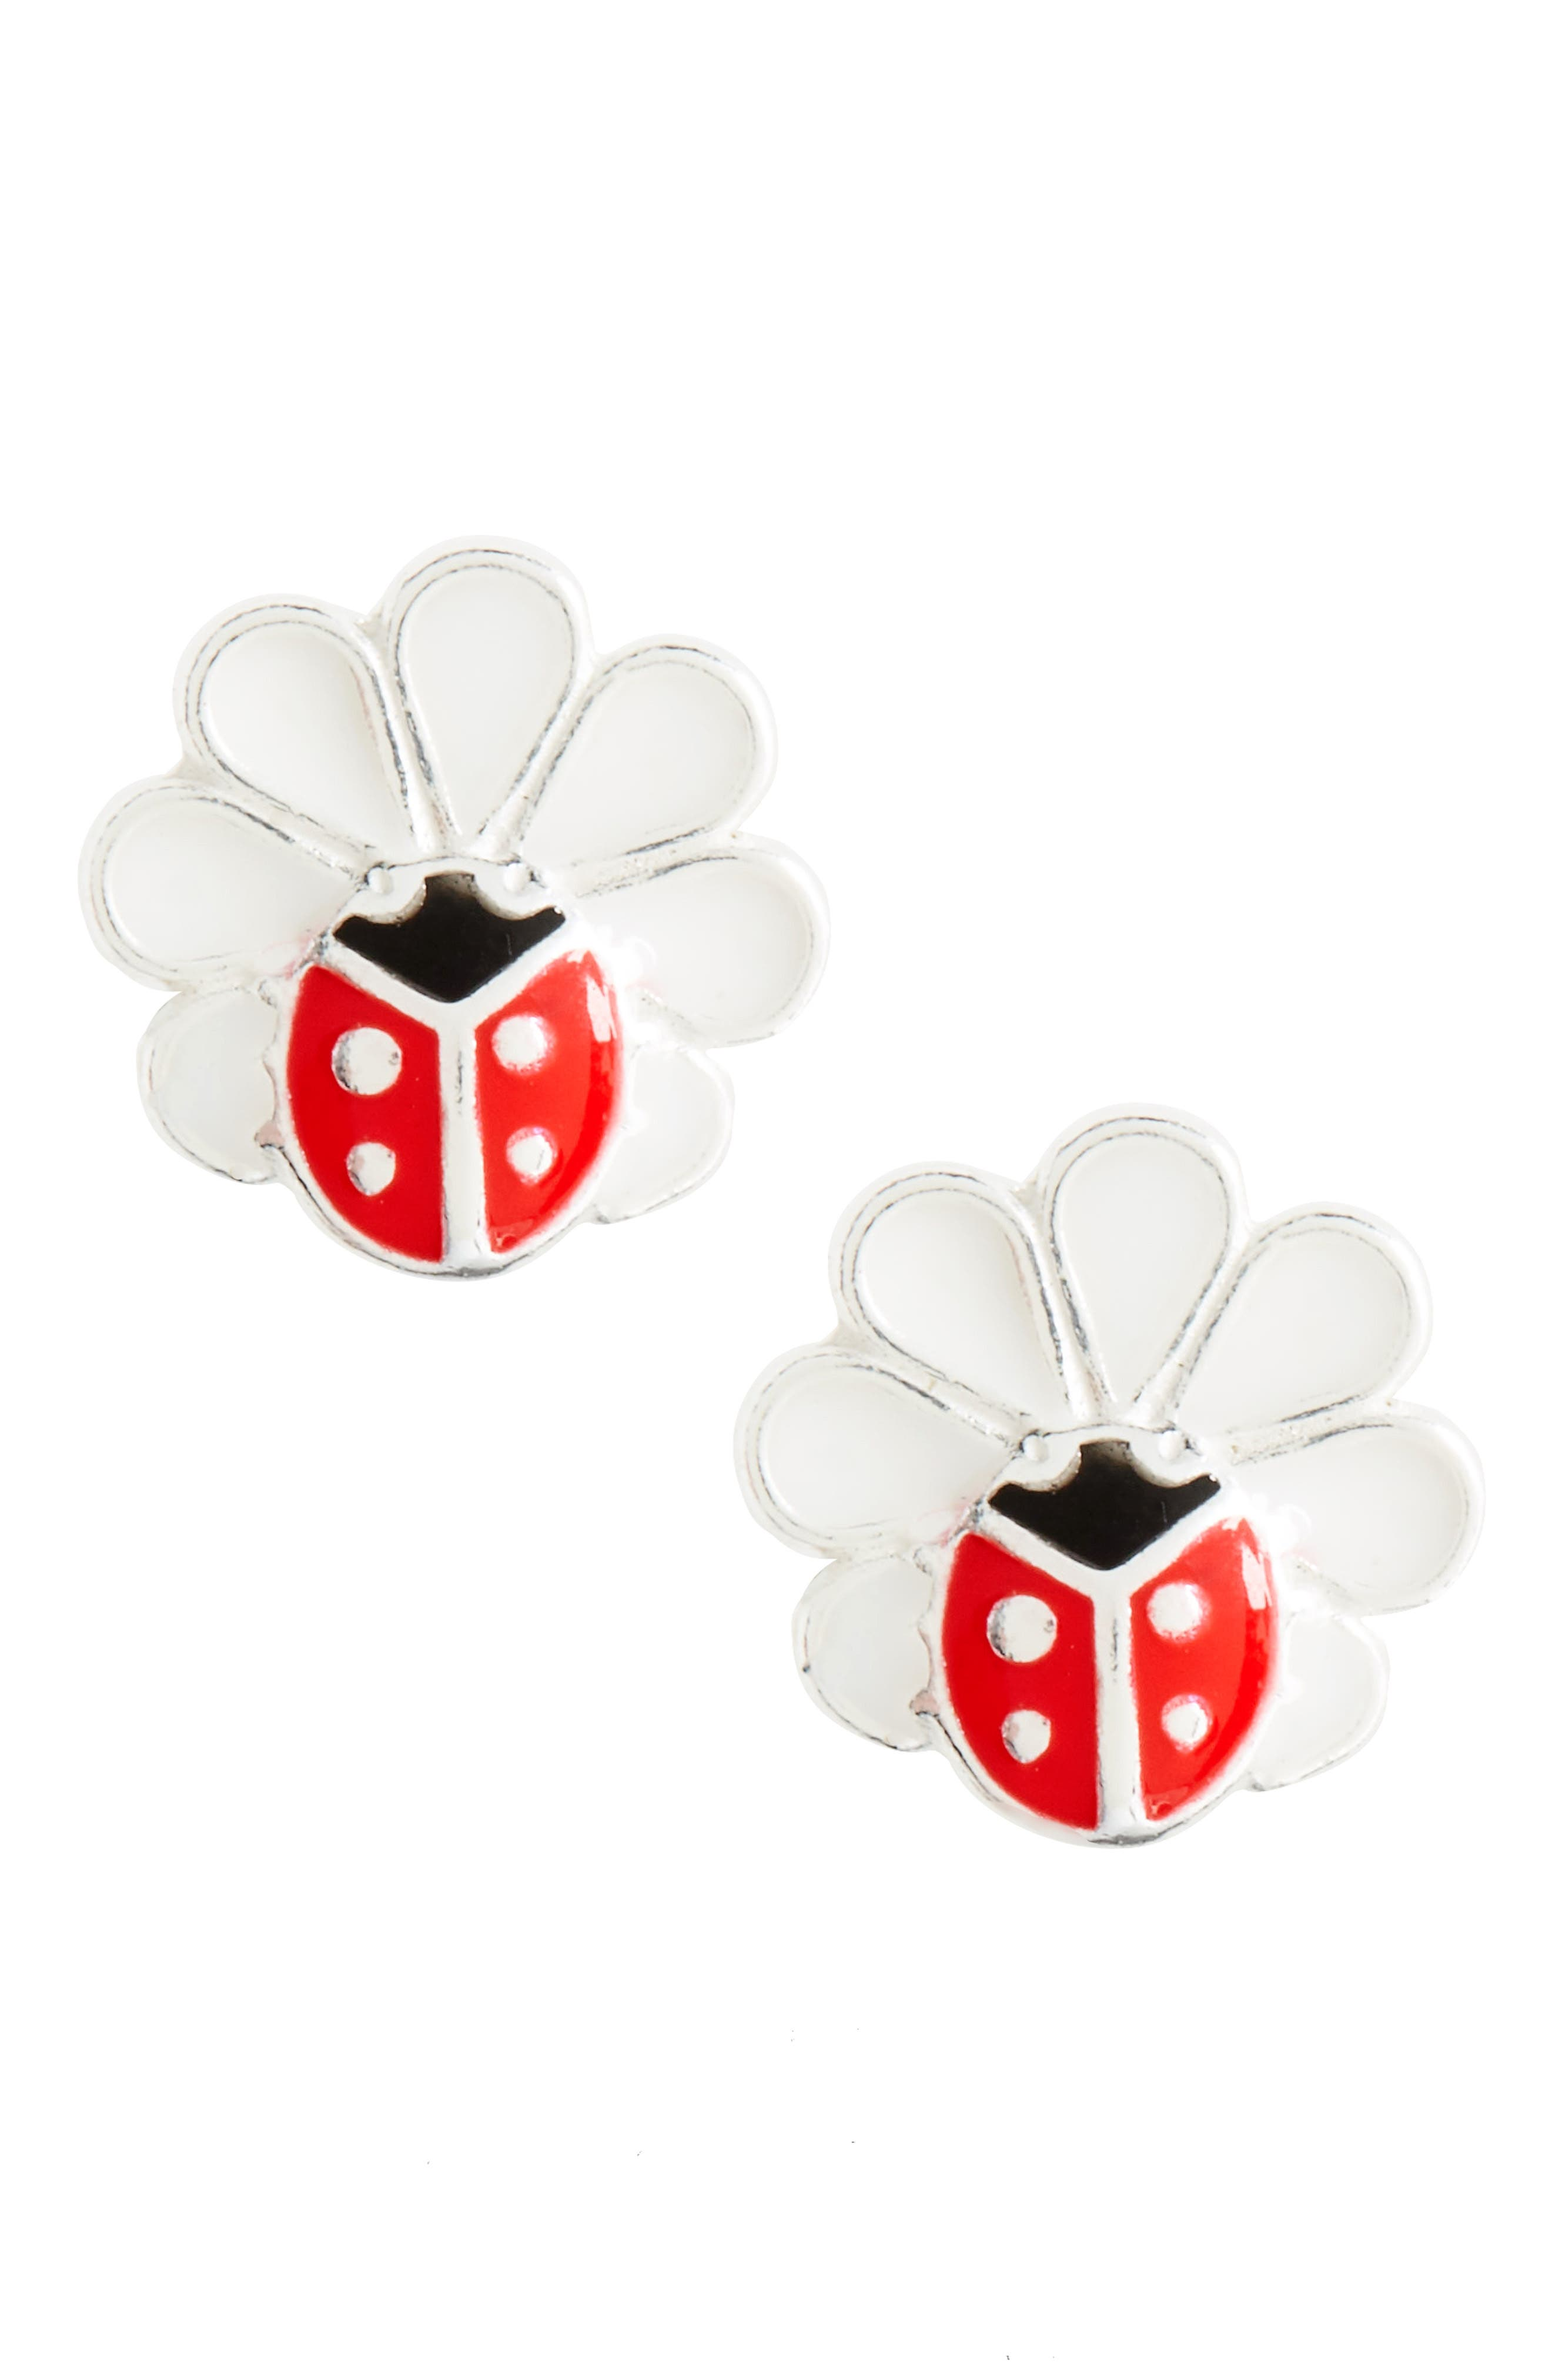 Tomas Ladybug Flower Sterling Silver Earrings (Girls)